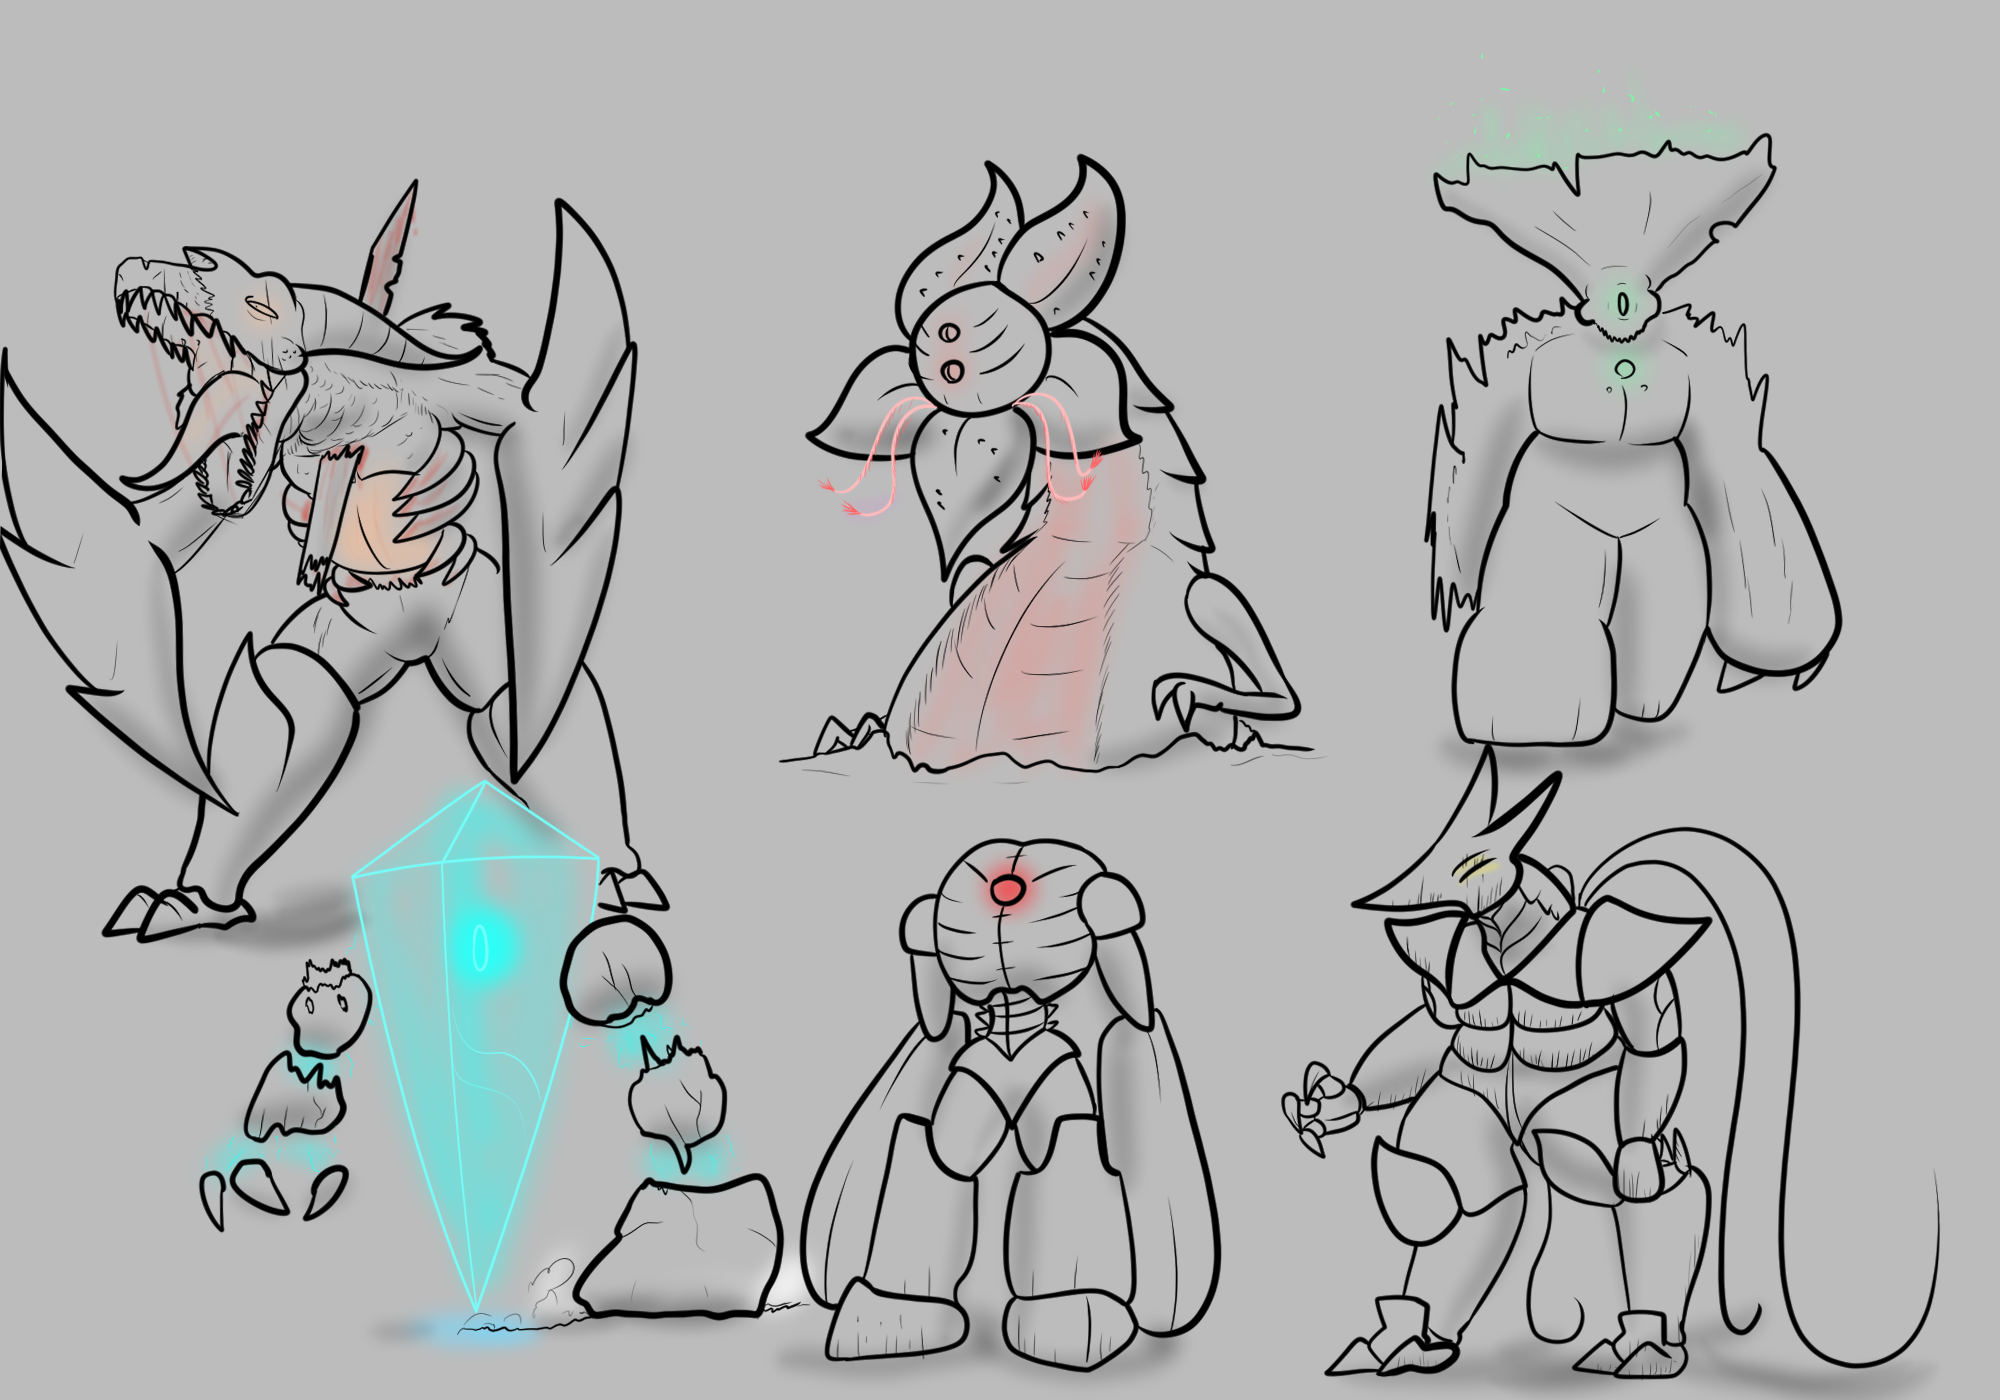 Some More Giant Monster Designs By Theprimaldino On Newgrounds